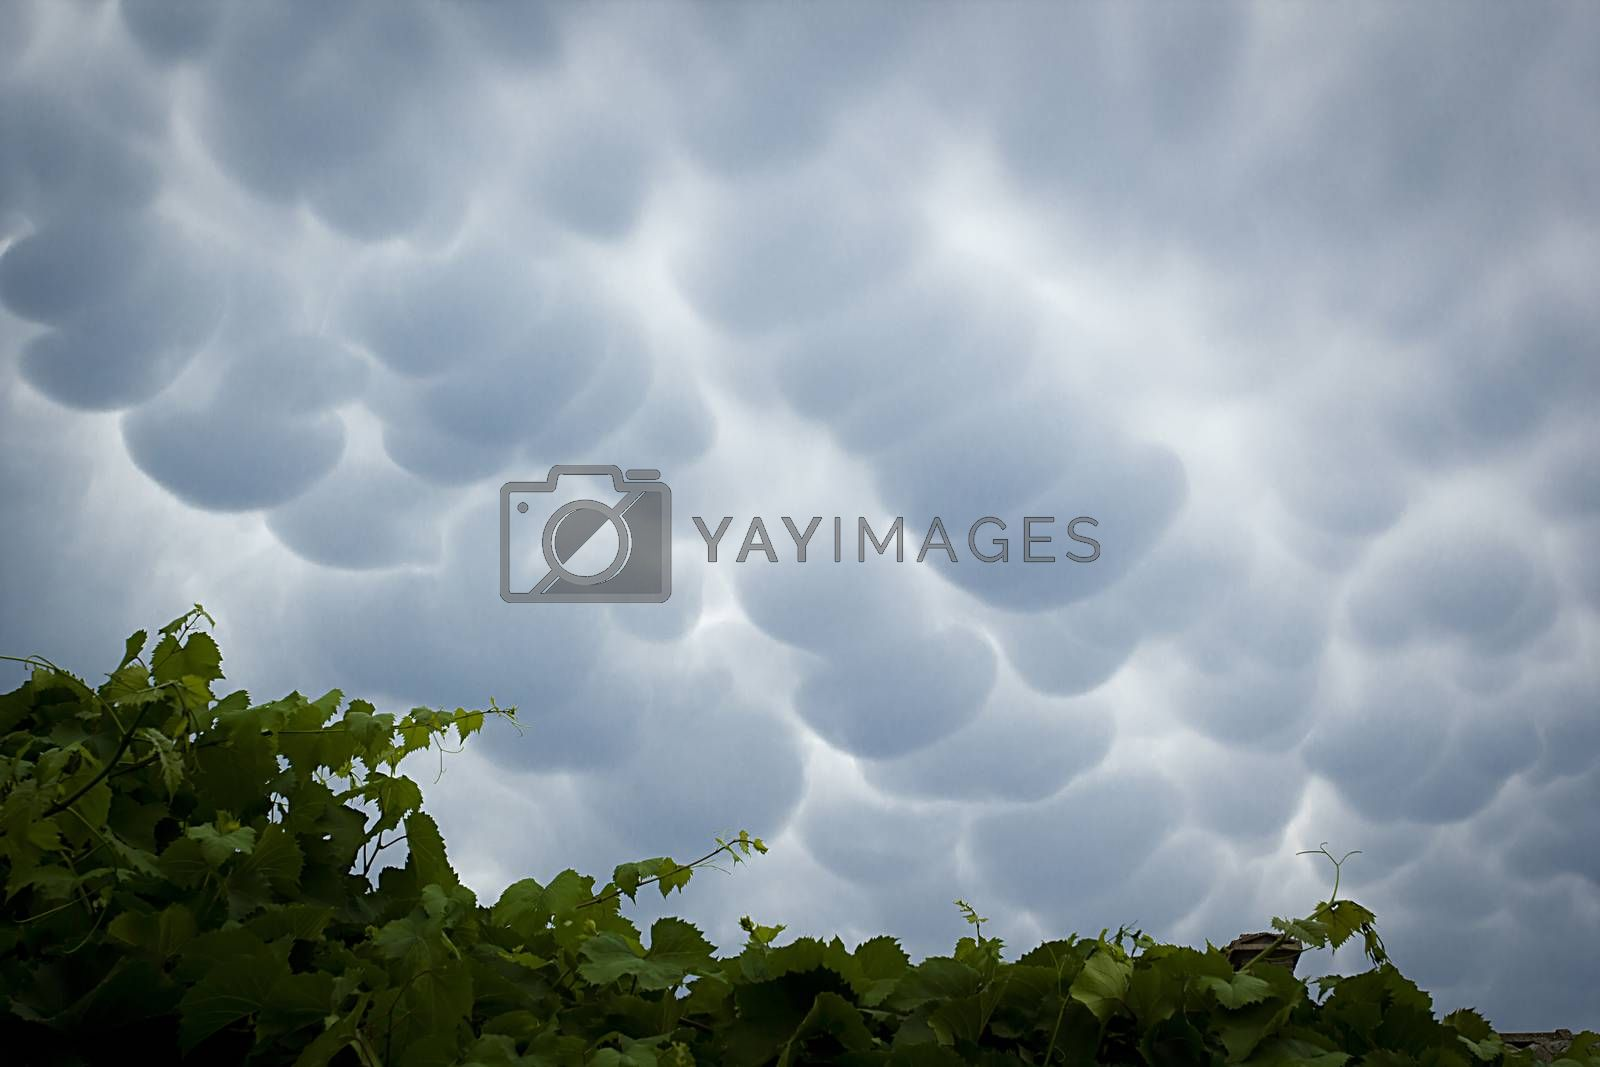 Menacing mammatus clouds before the storm, stormy sky, climate change and unpredictable terrifying mother nature